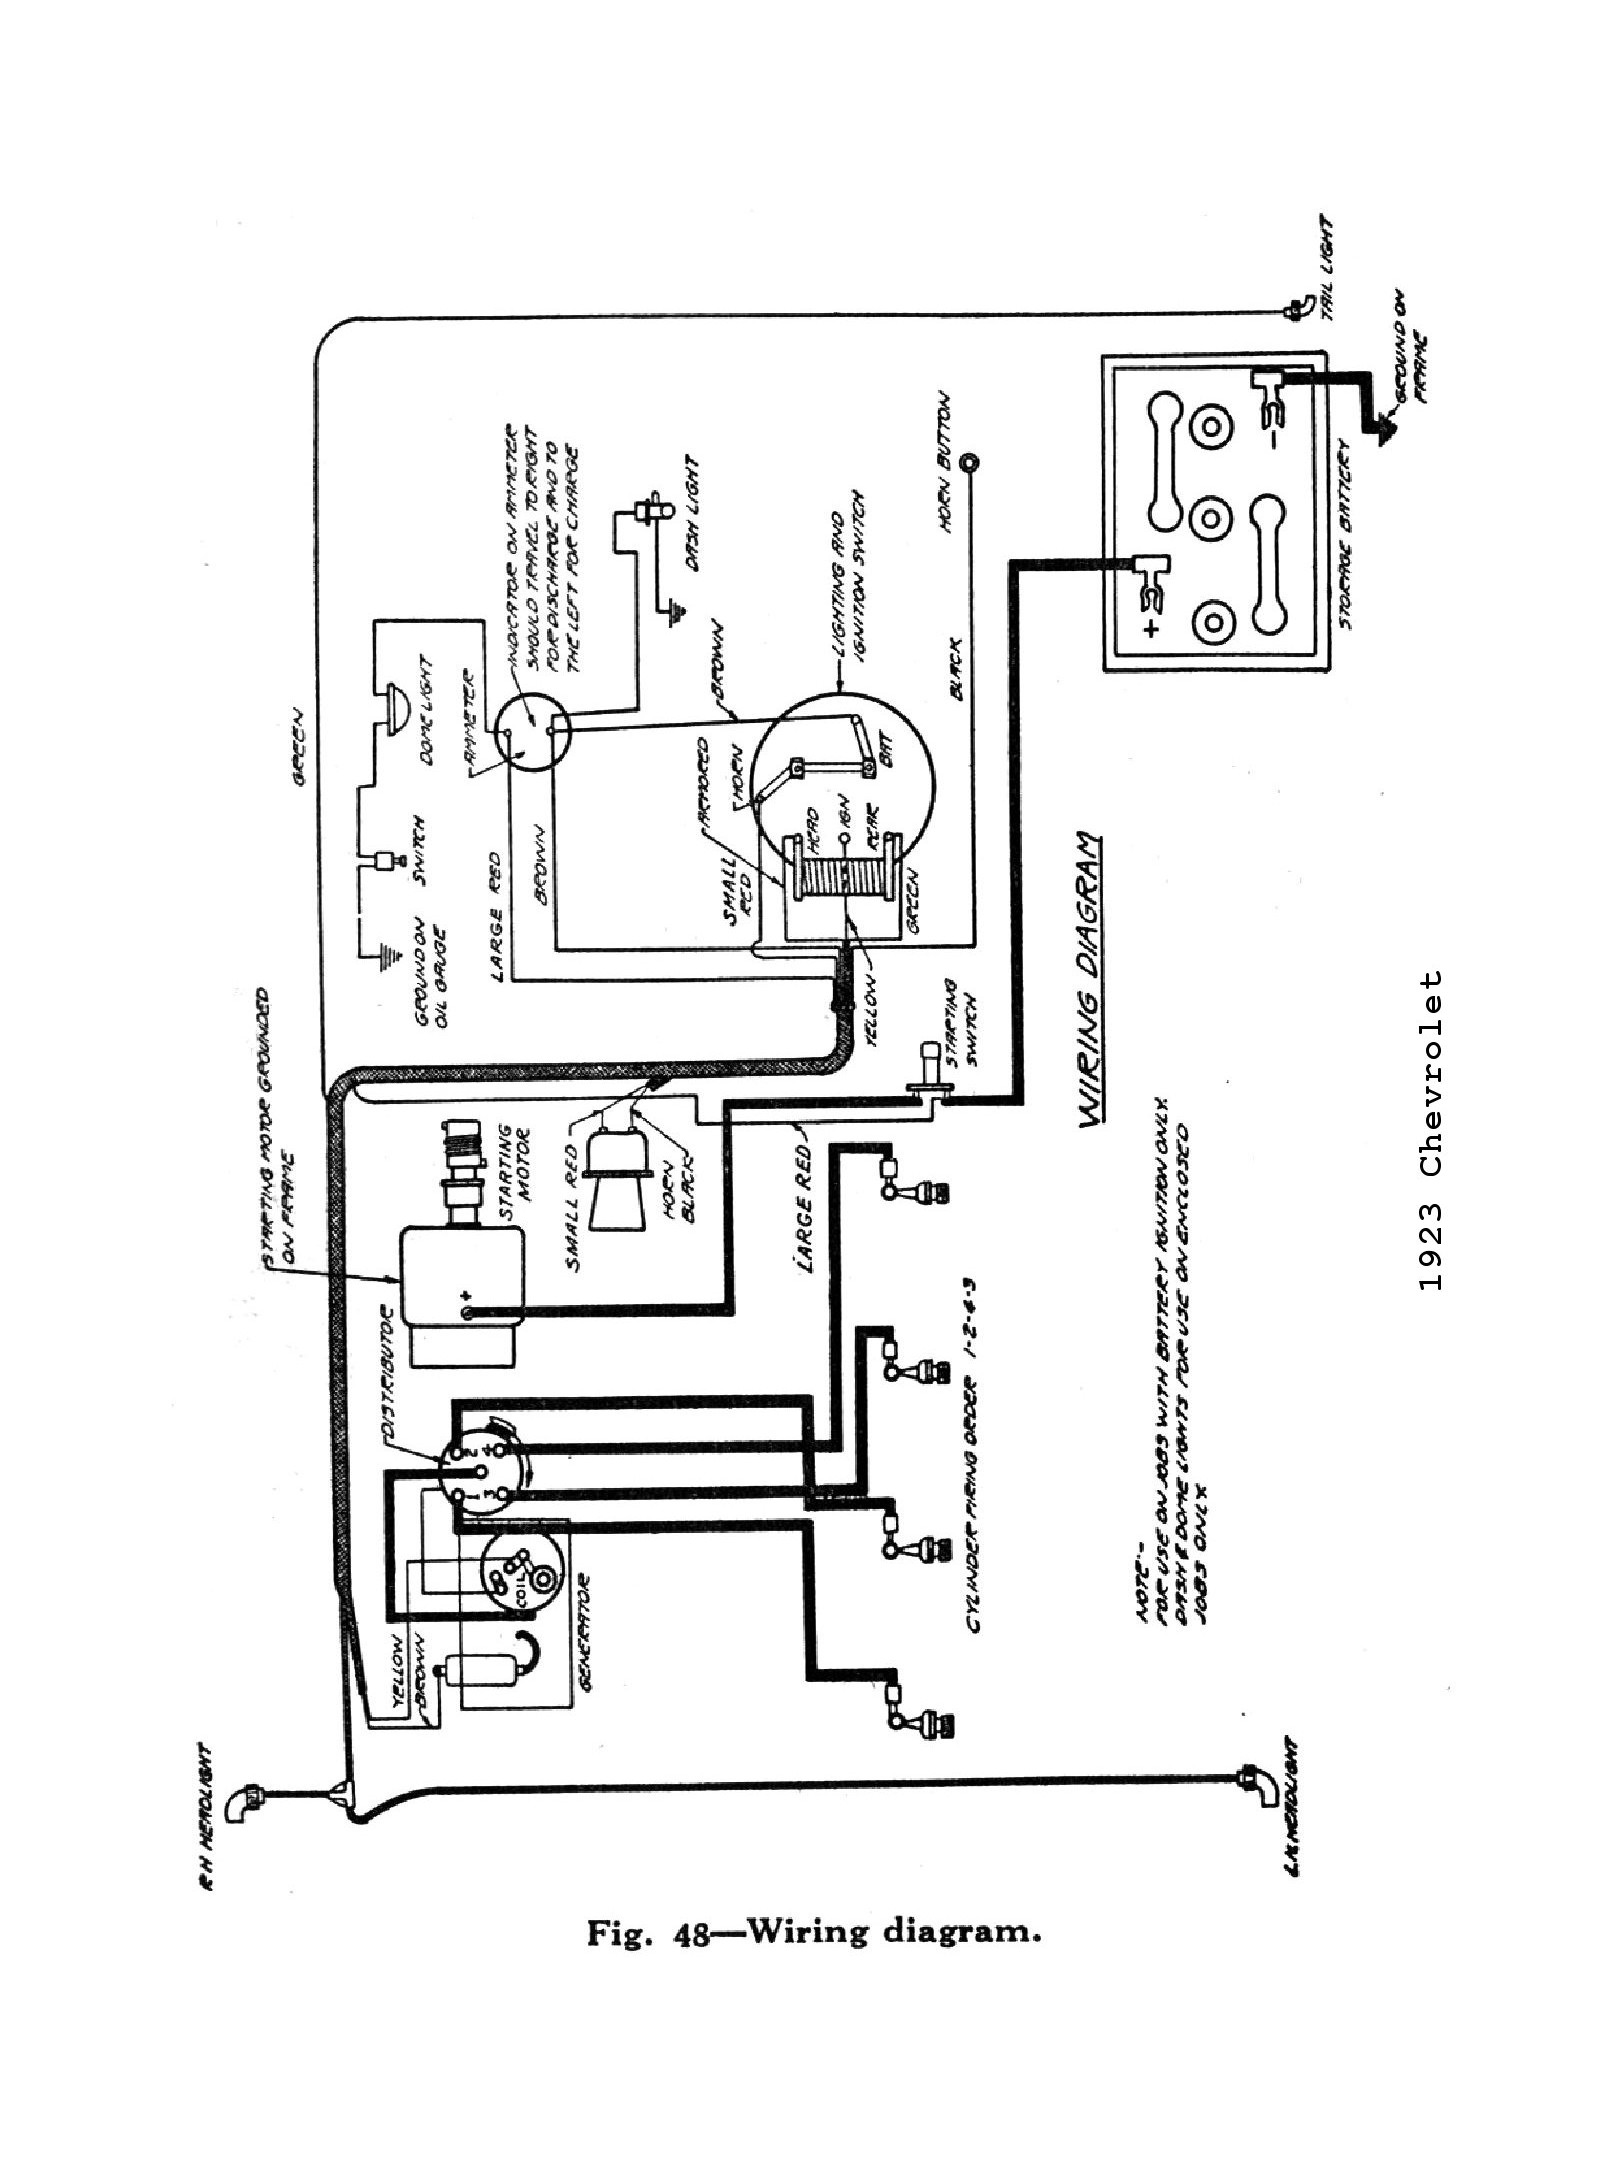 hight resolution of diagram of buick lucerne engine wiring library rh 57 winebottlecrafts org 2001 buick lesabre engine wiring harness 1969 buick skylark engine wiring harness